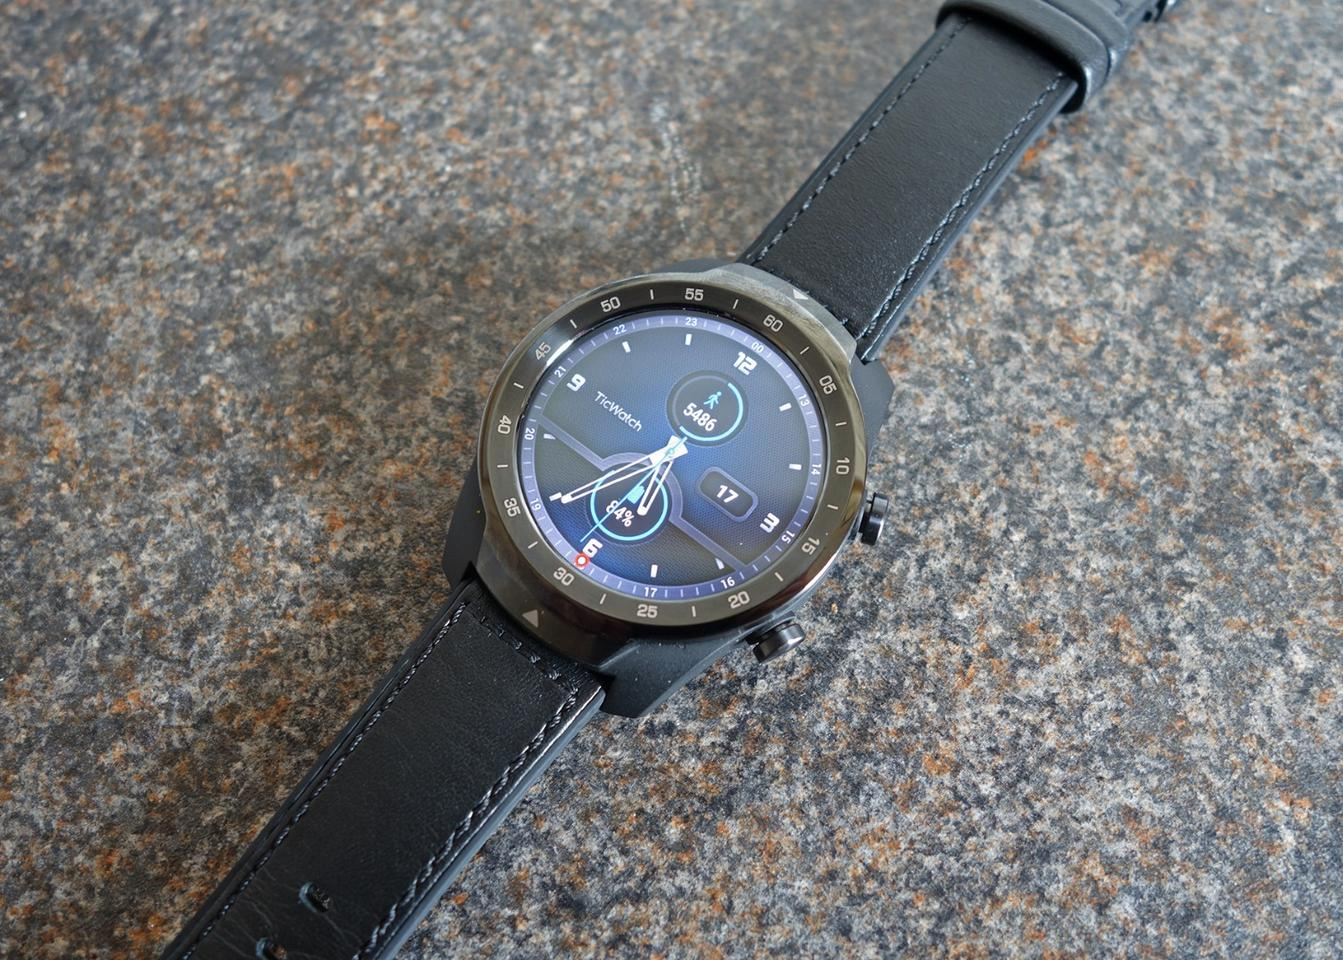 Ticwatch Pro review: Dual-layer screen makes for one of the